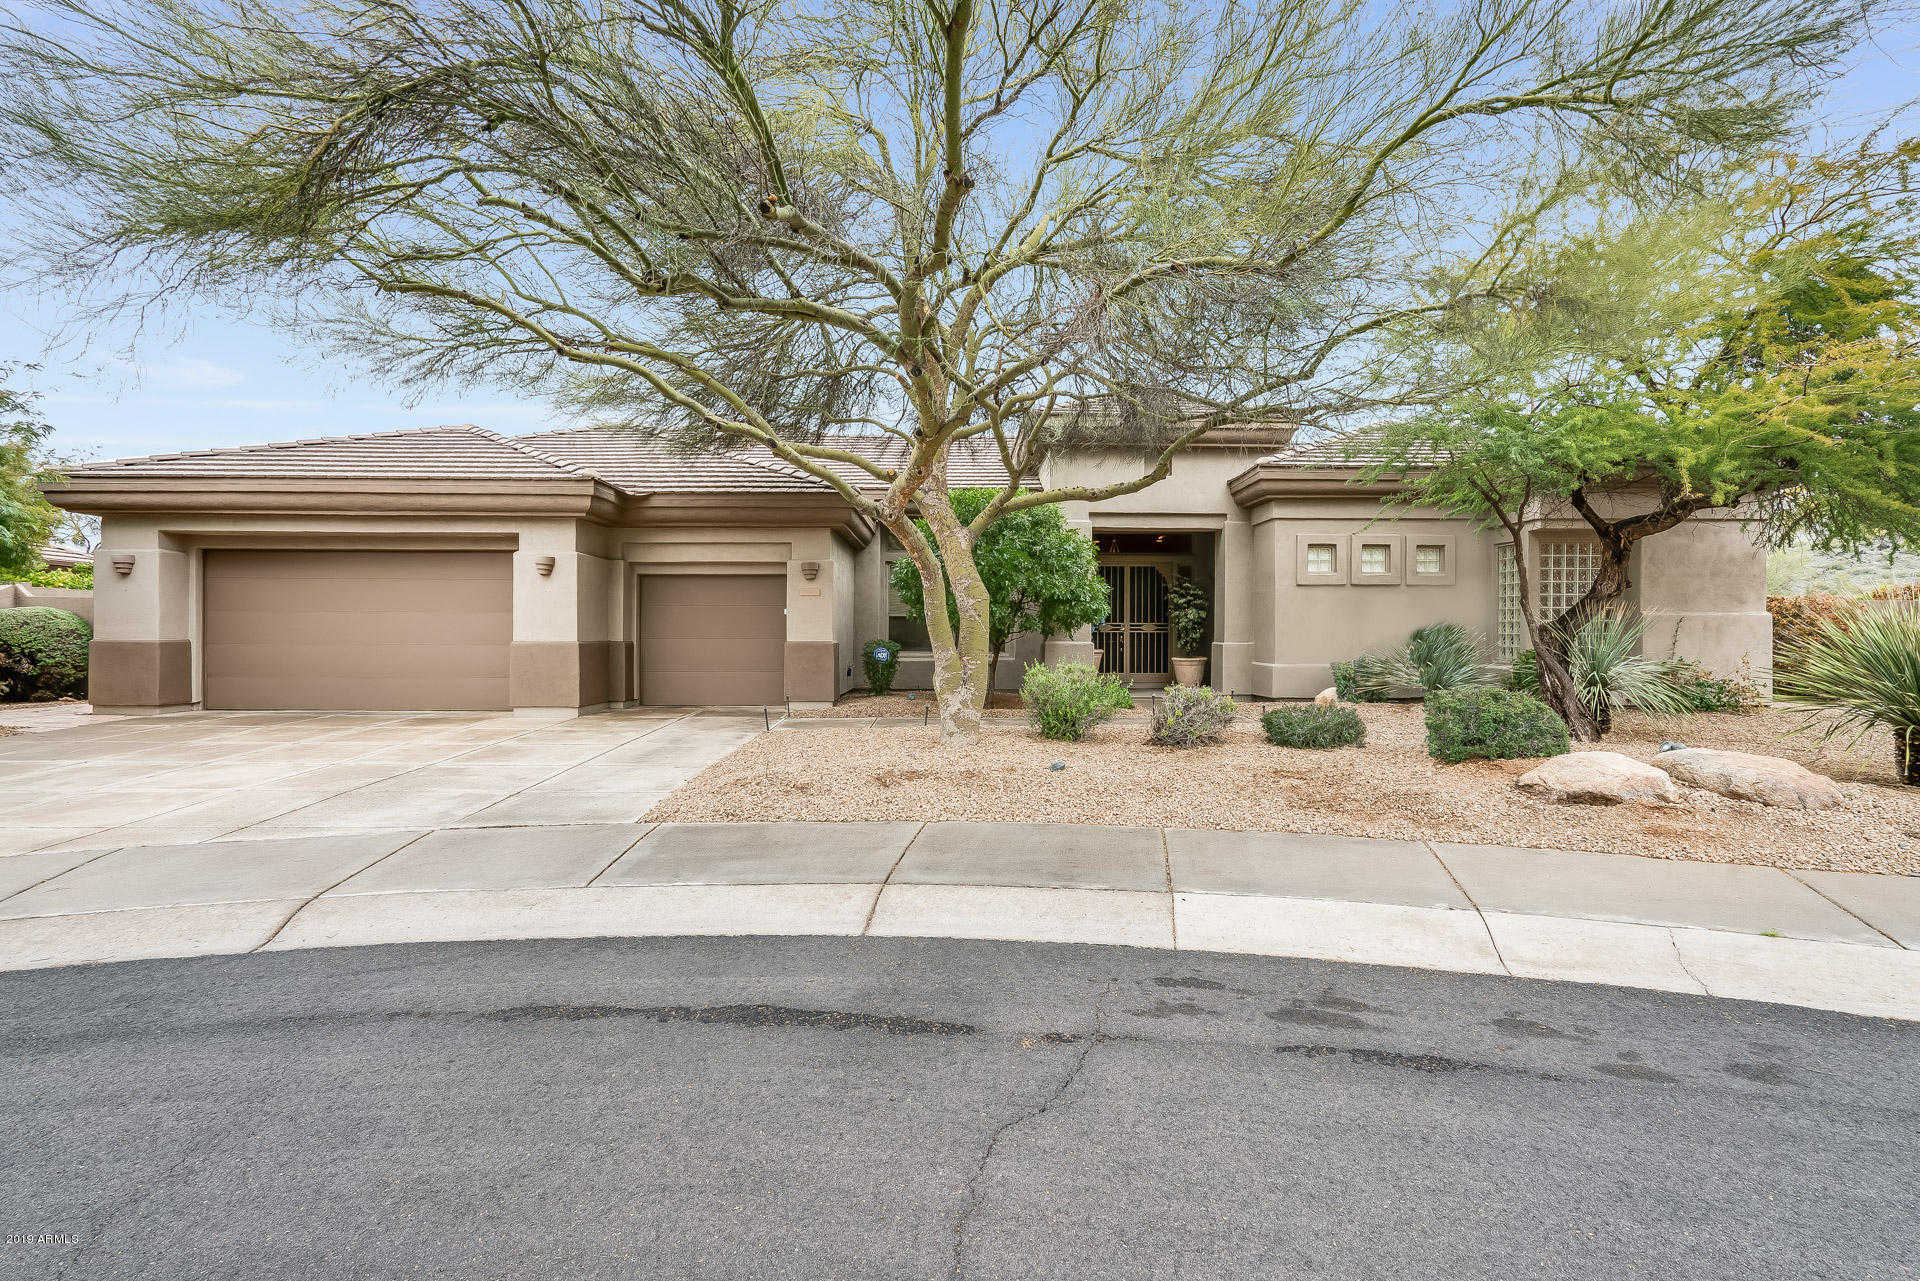 $865,000 - 4Br/5Ba - Home for Sale in Parcel Q/r At Terravita, Scottsdale